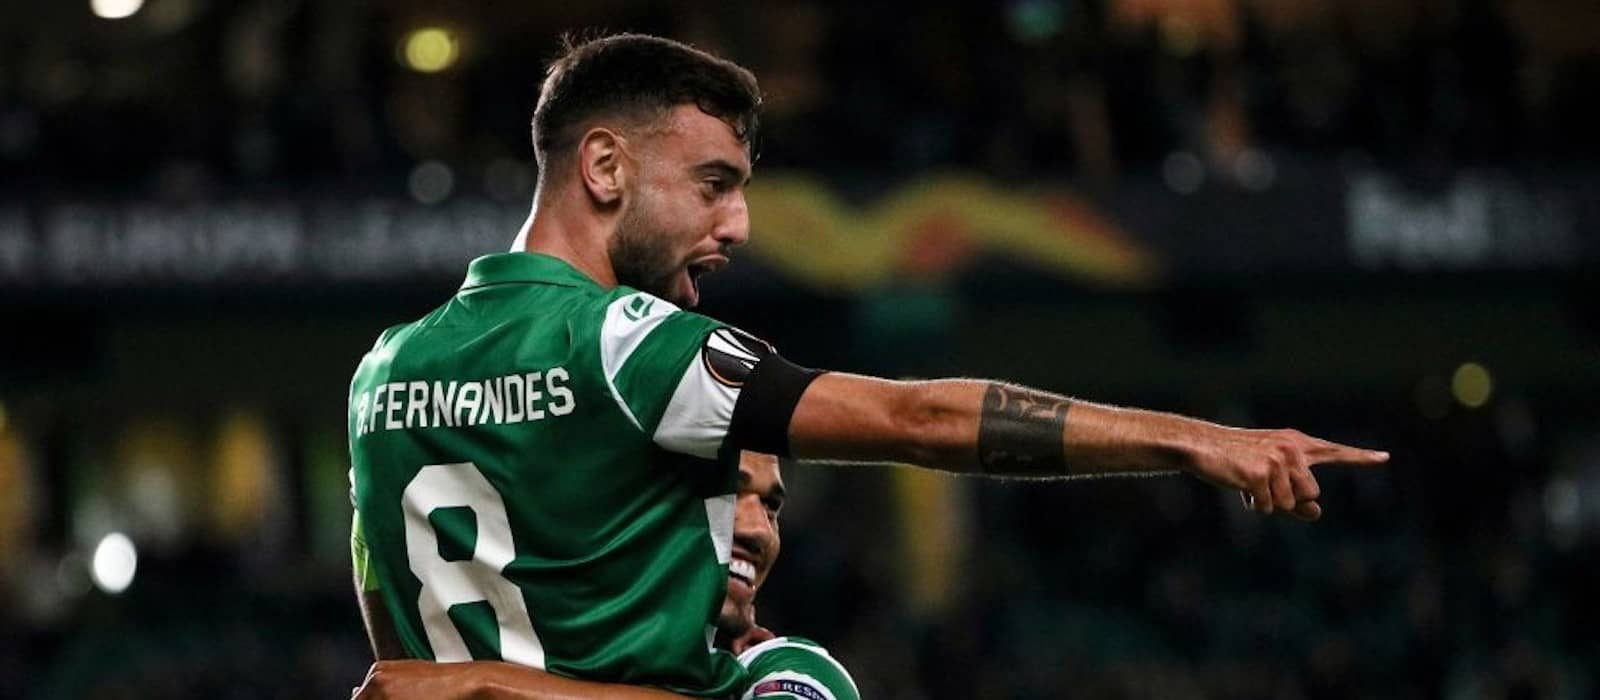 Done deal: Manchester United and Sporting Lisbon agree Bruno Fernandes transfer